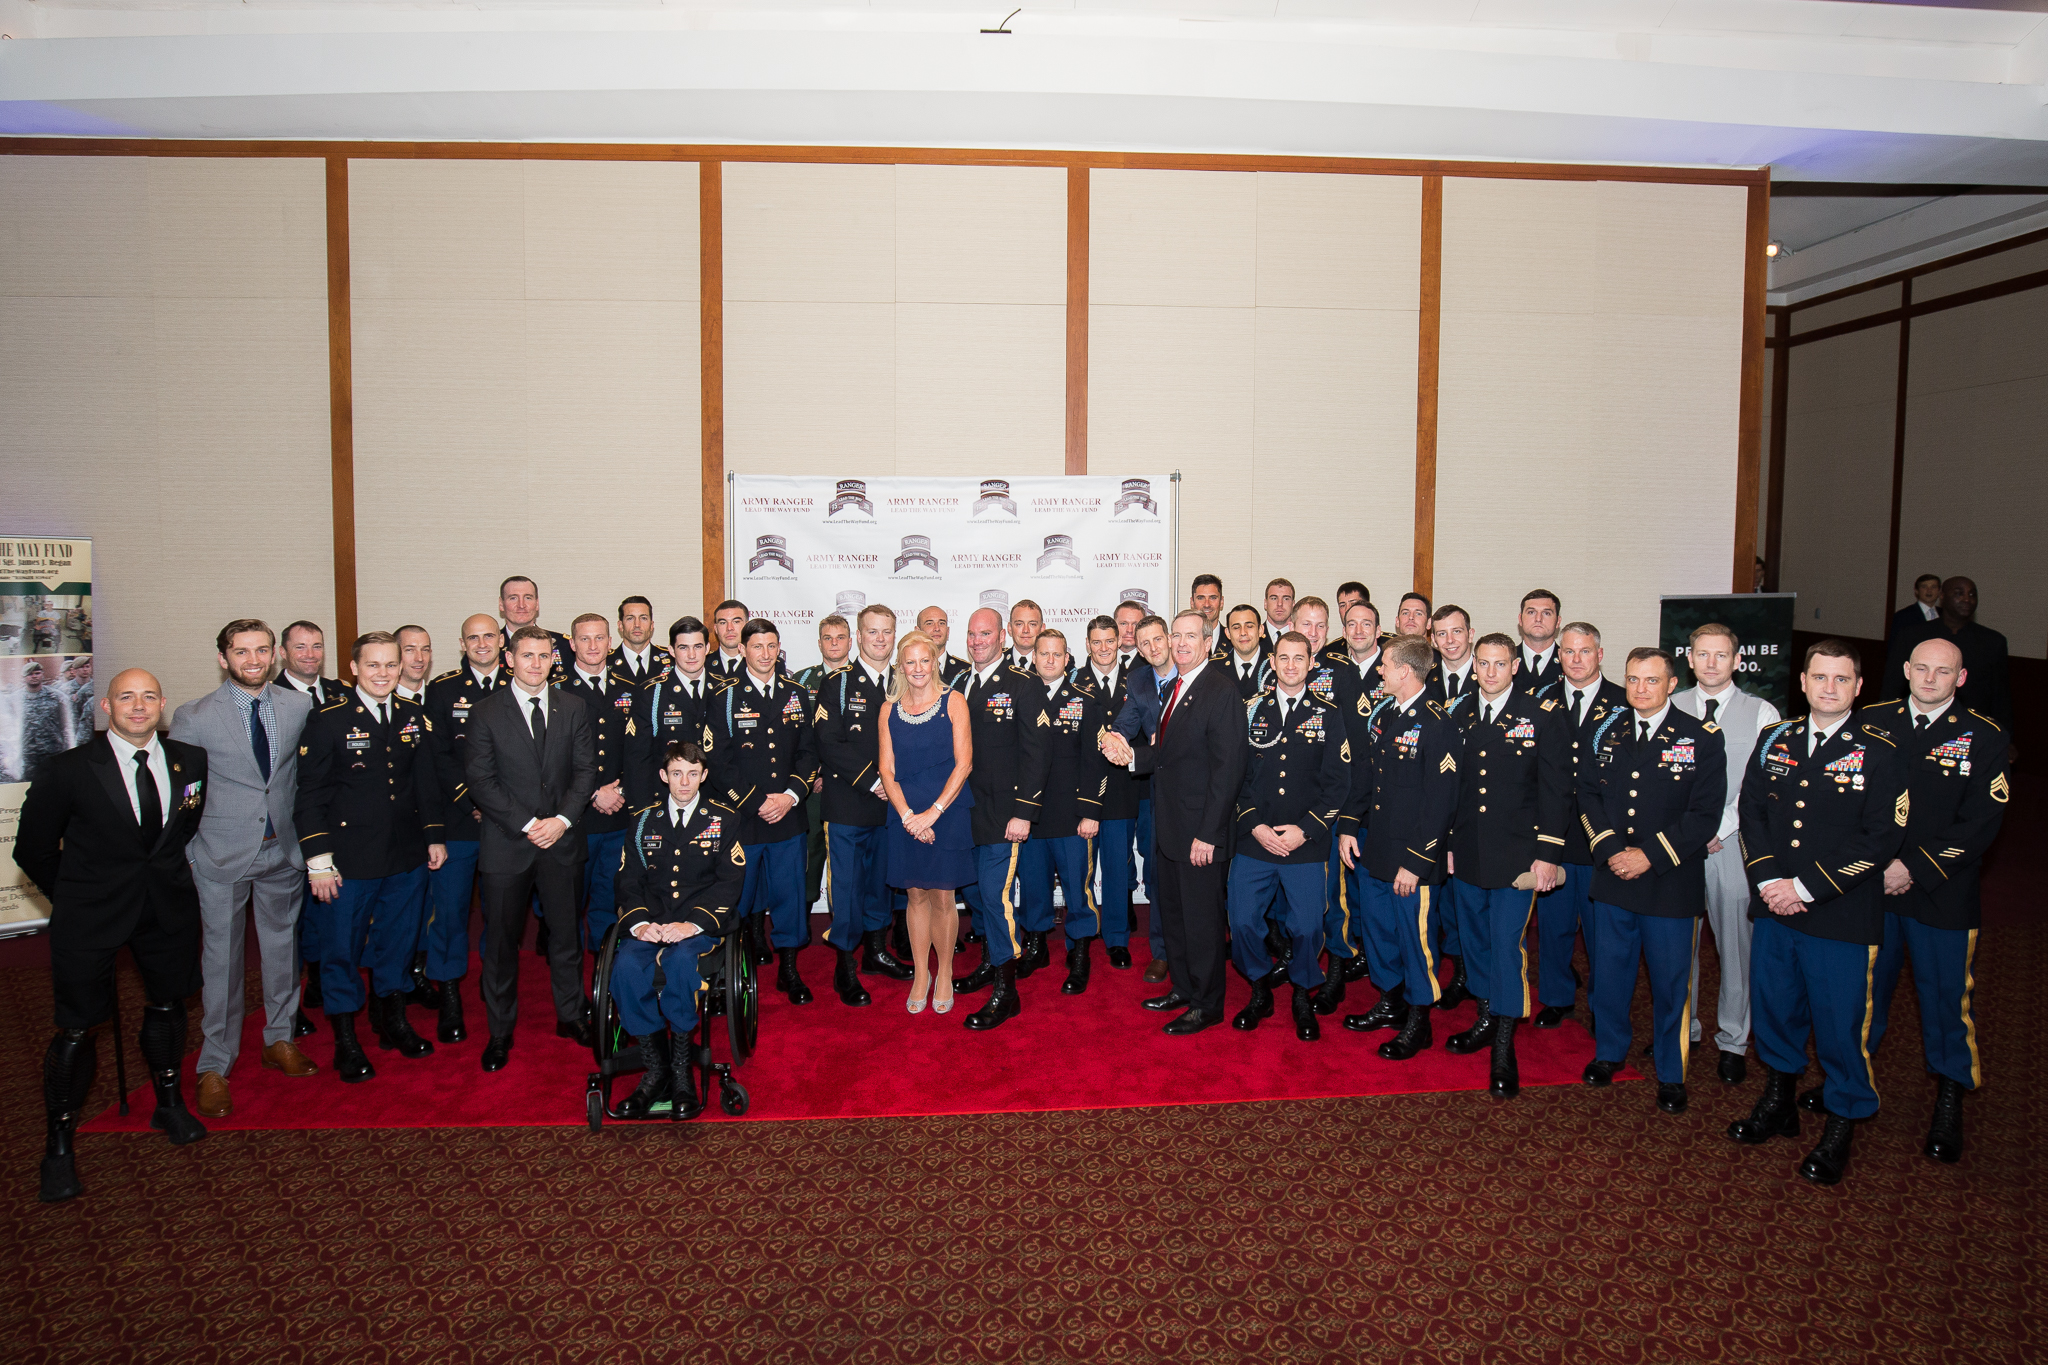 Army Ranger Lead The Way Fund Gala Thank You